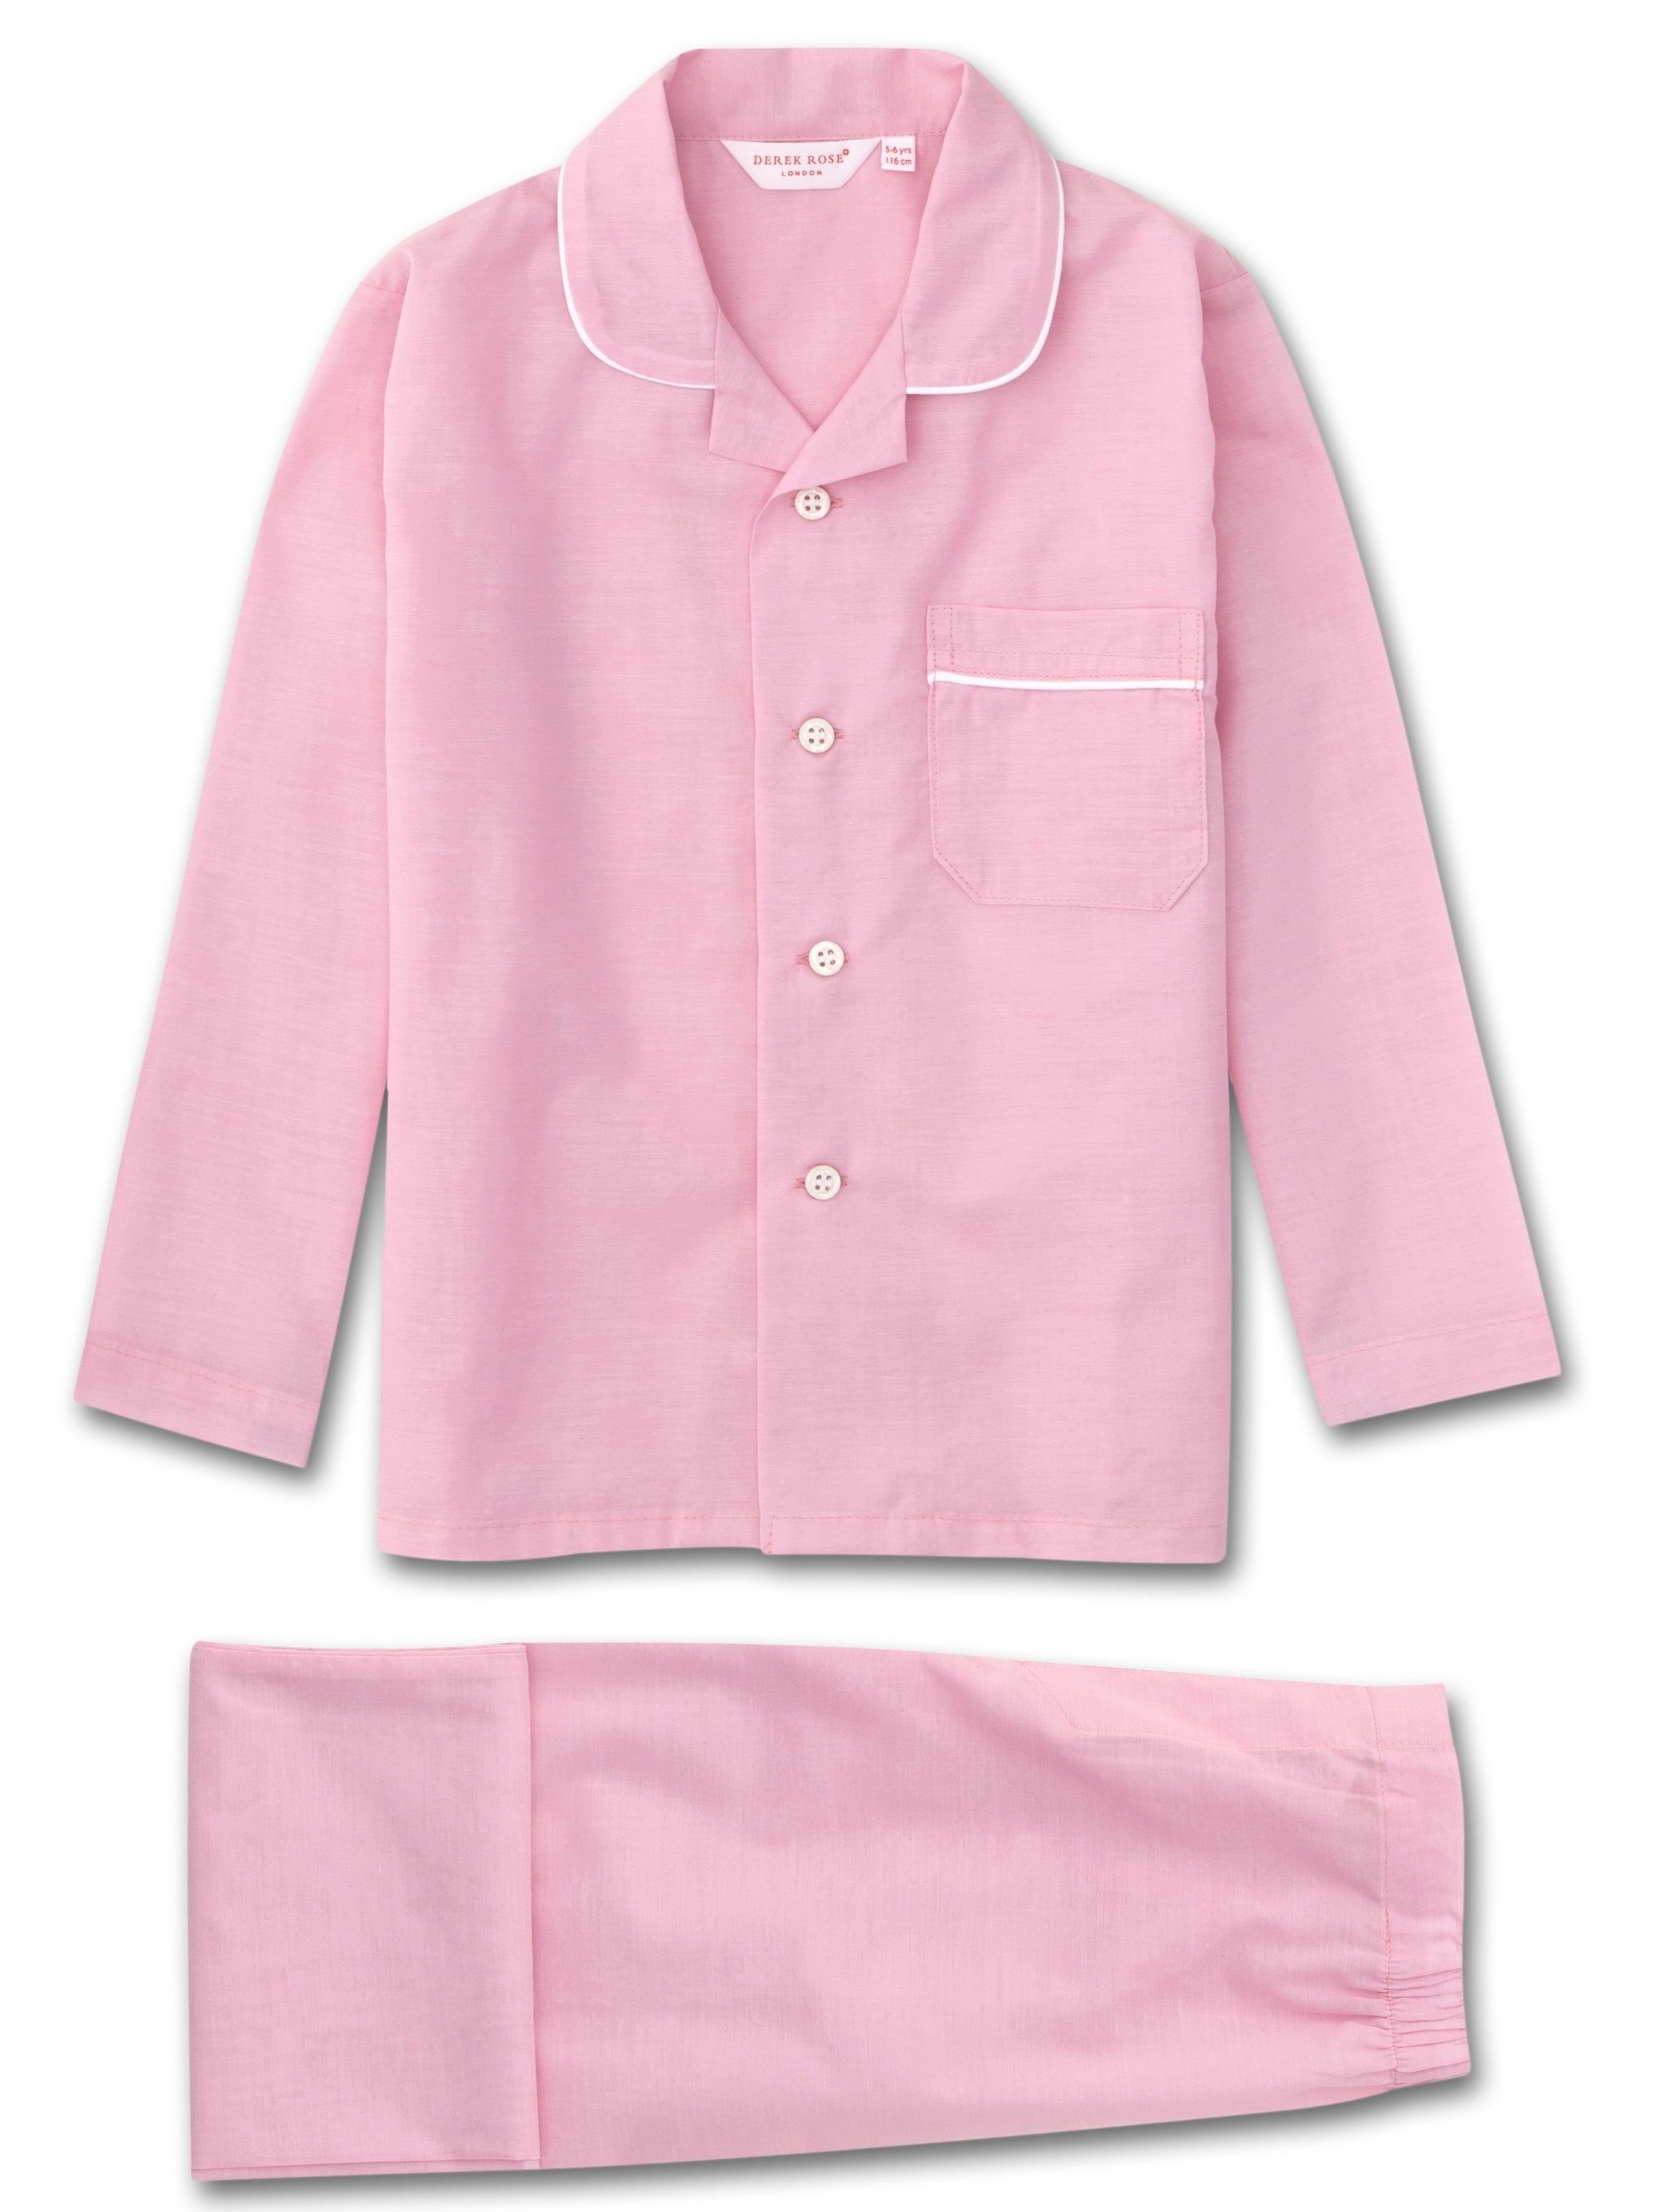 Kids' Pyjamas Amalfi Cotton Batiste Rose